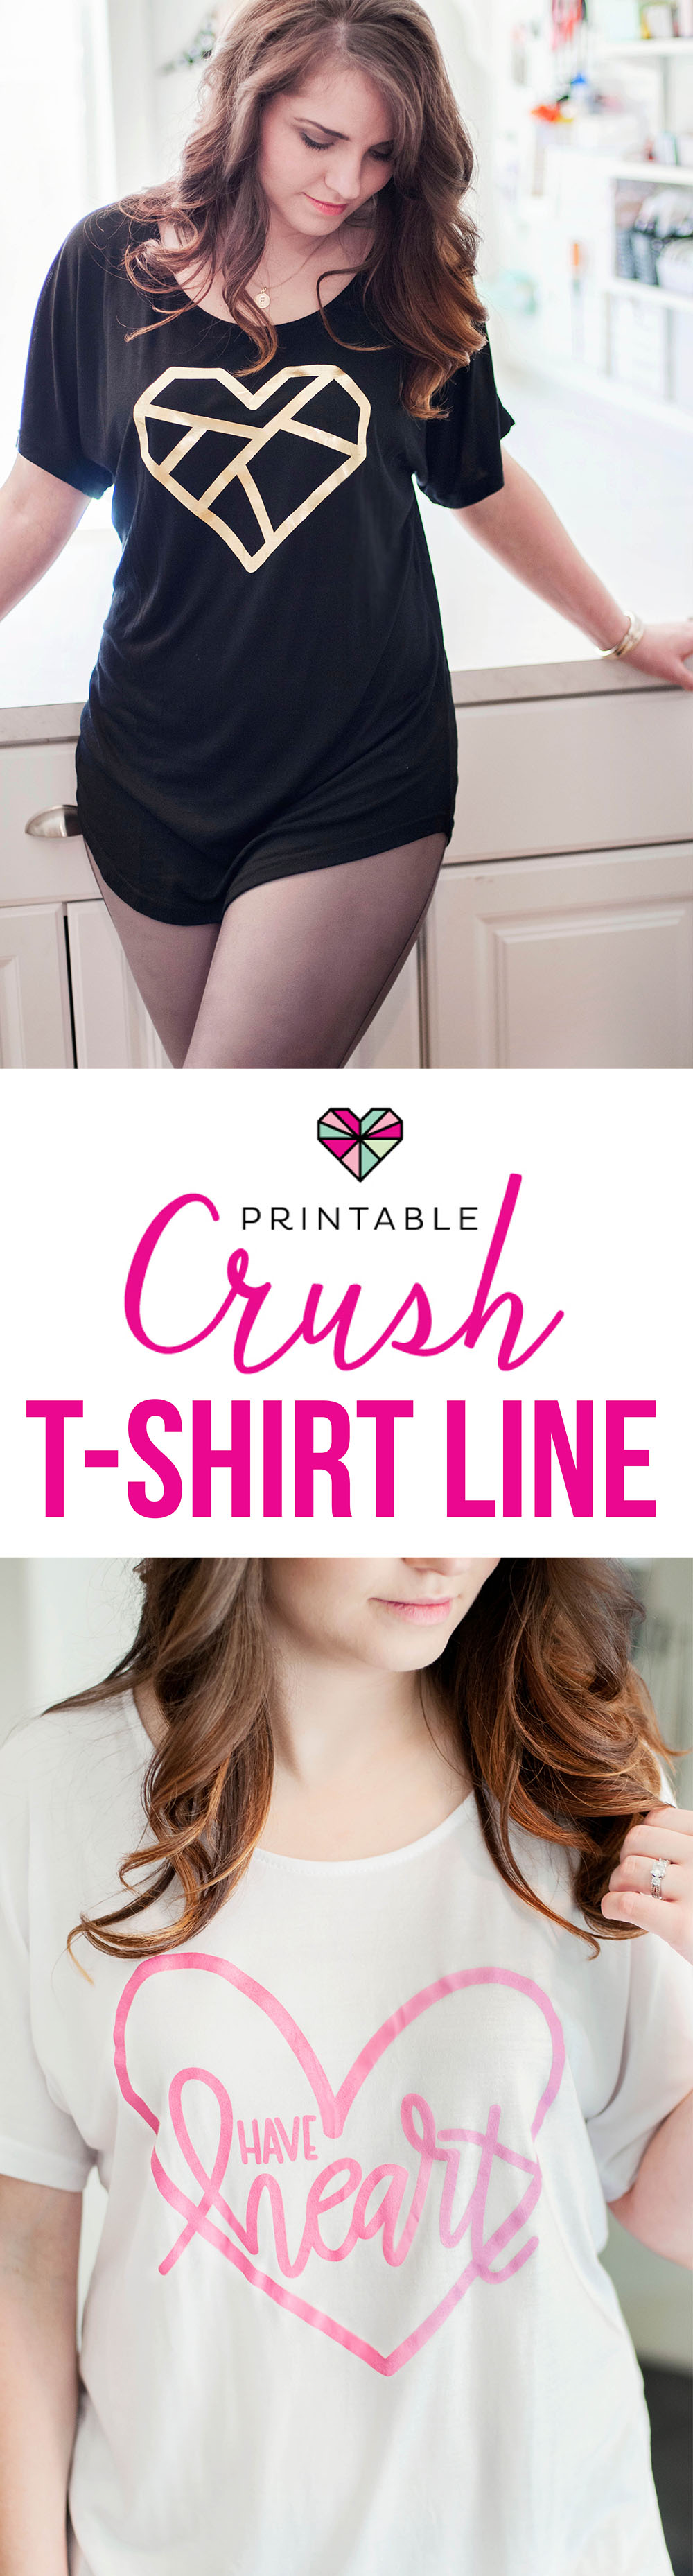 Introducing the new Printable Crush T-shirt Line with gold foil, ombre, and hand-lettered designs. These gorgeous tees are comfortable enough to wear at home with your yoga pants, and pretty enough to wear out on the town!